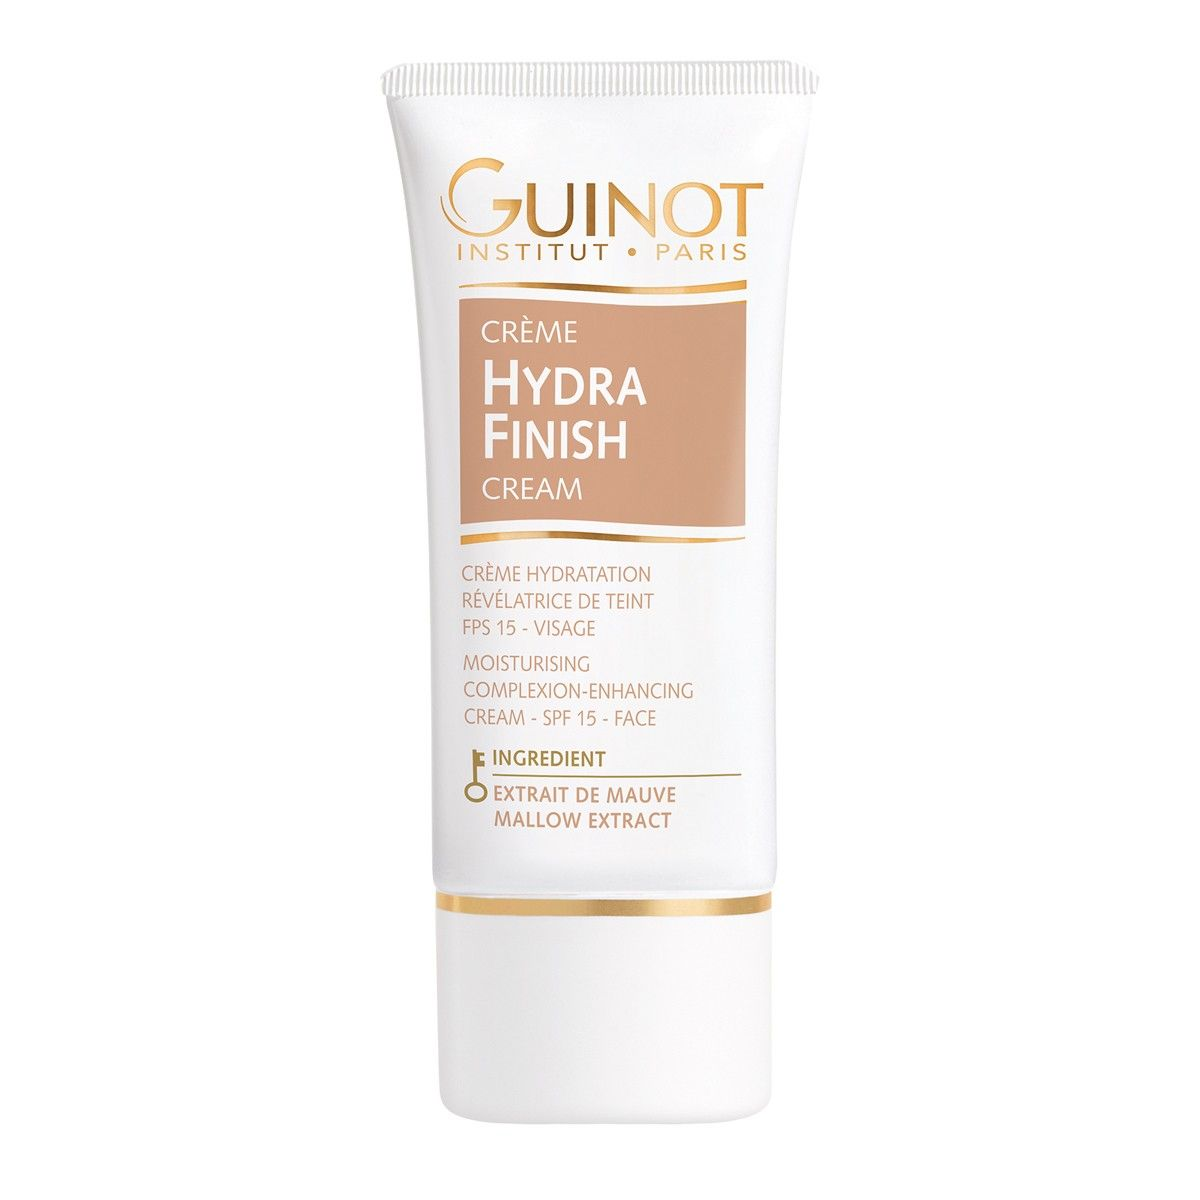 Guinot Creme hydra finish Institut Conny Delvaux